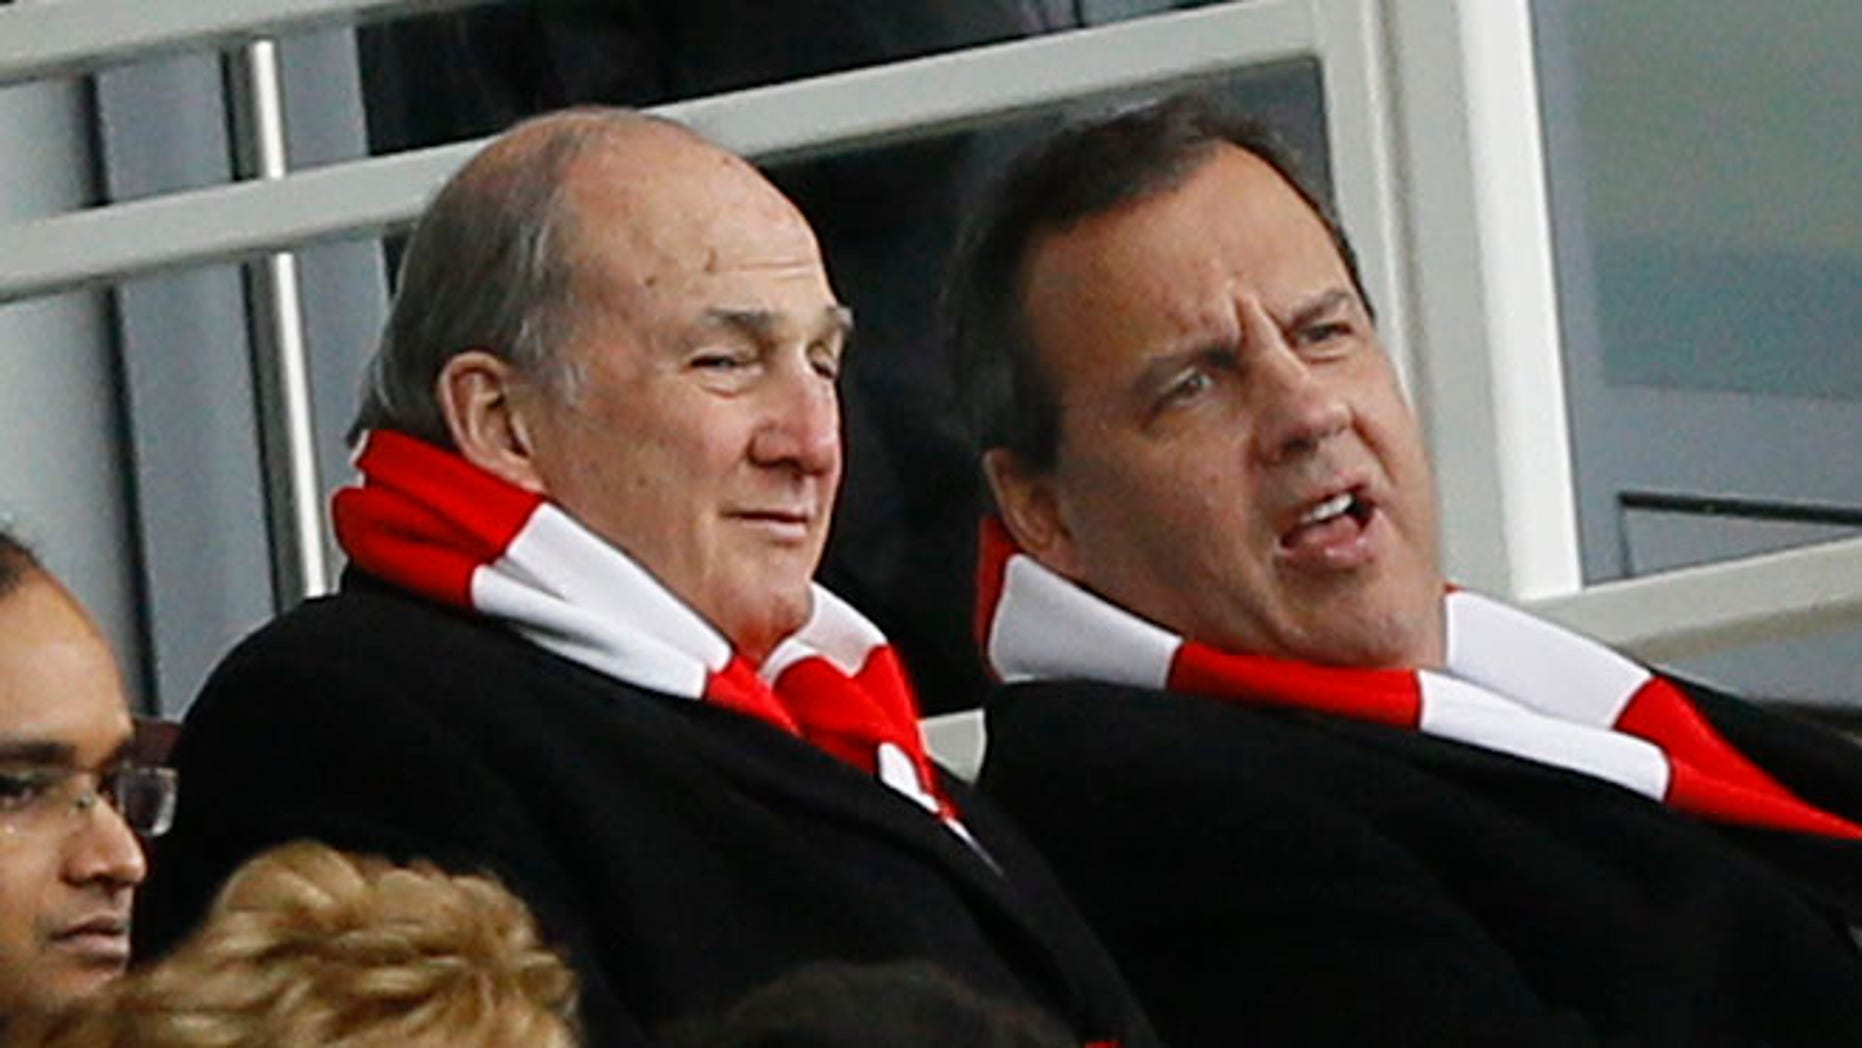 Feb. 1, 2015: New Jersey Gov. Chris Christie, top right, watching an English Premier League soccer match between Arsenal and Aston Villa at the Emirates stadium in London, England.